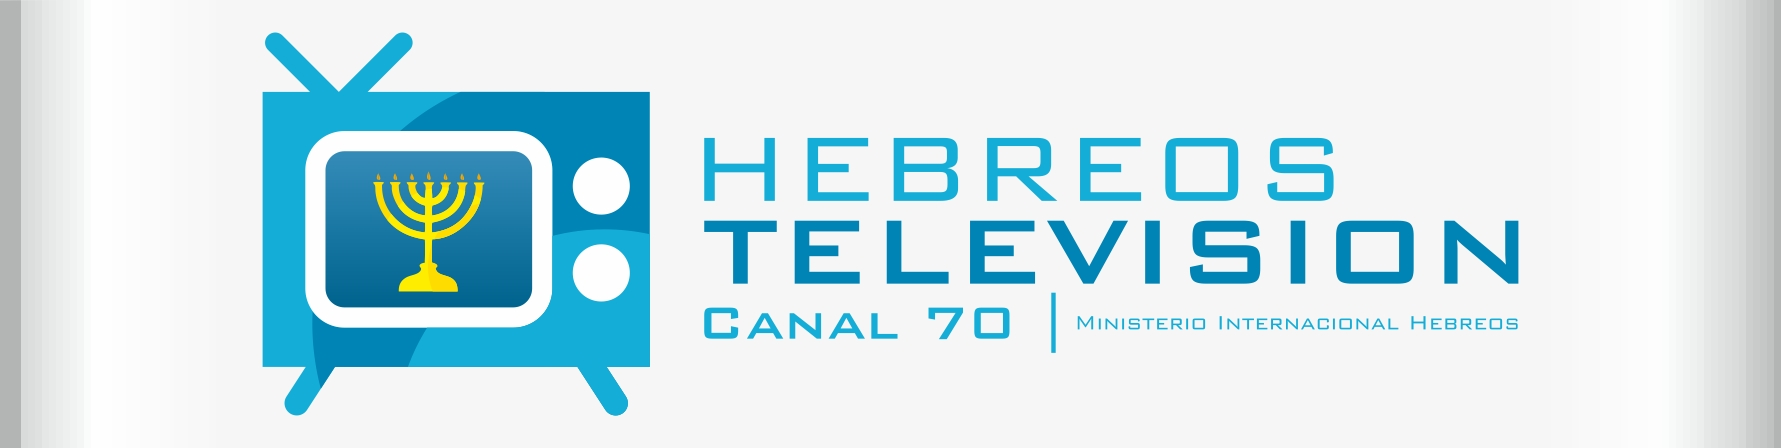 Hebreos-TV-(Honduras)